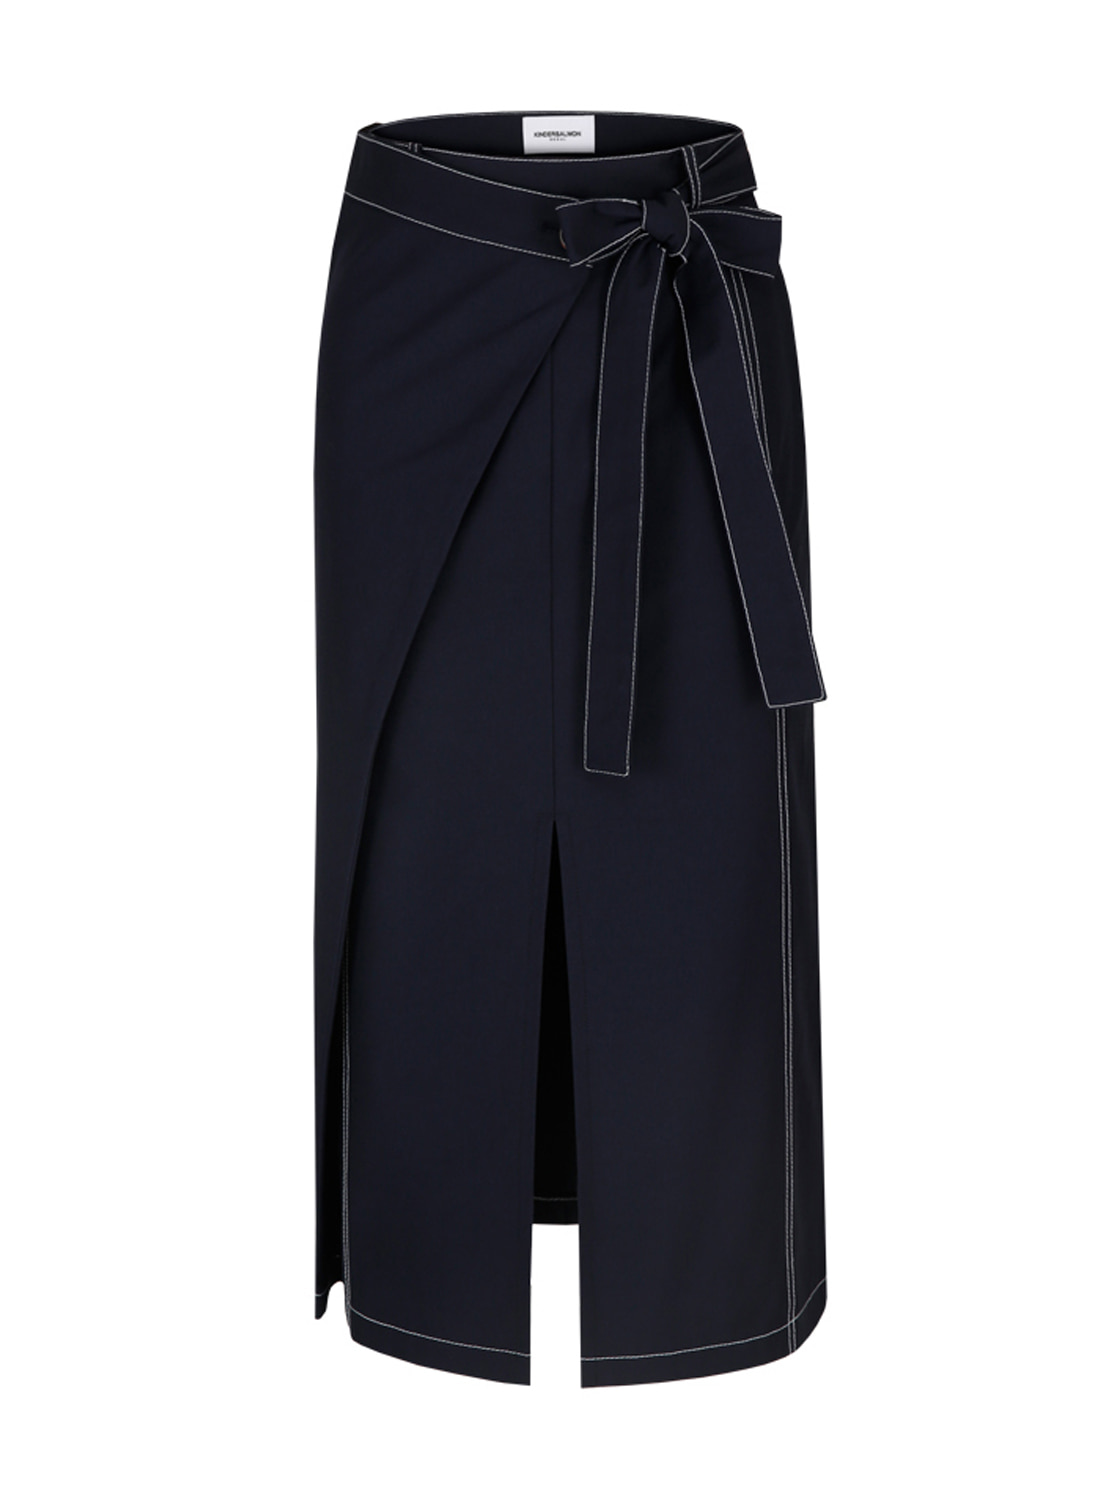 SS18 FOLDING SKIRT NAVY